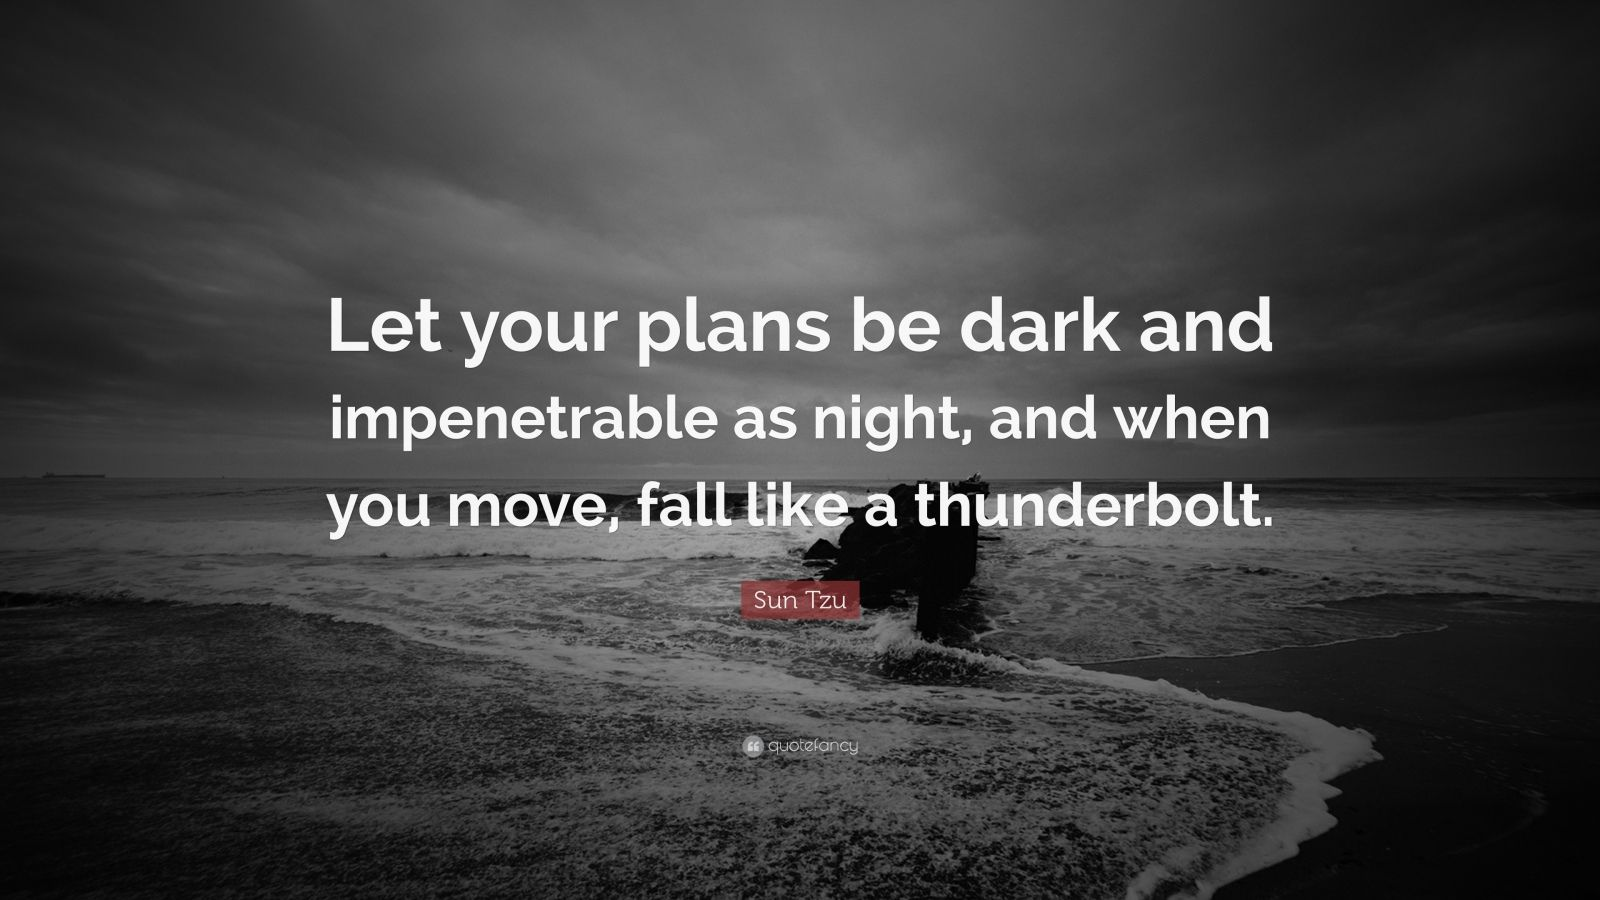 Theodore Roosevelt Wallpaper Quote Sun Tzu Quote Let Your Plans Be Dark And Impenetrable As